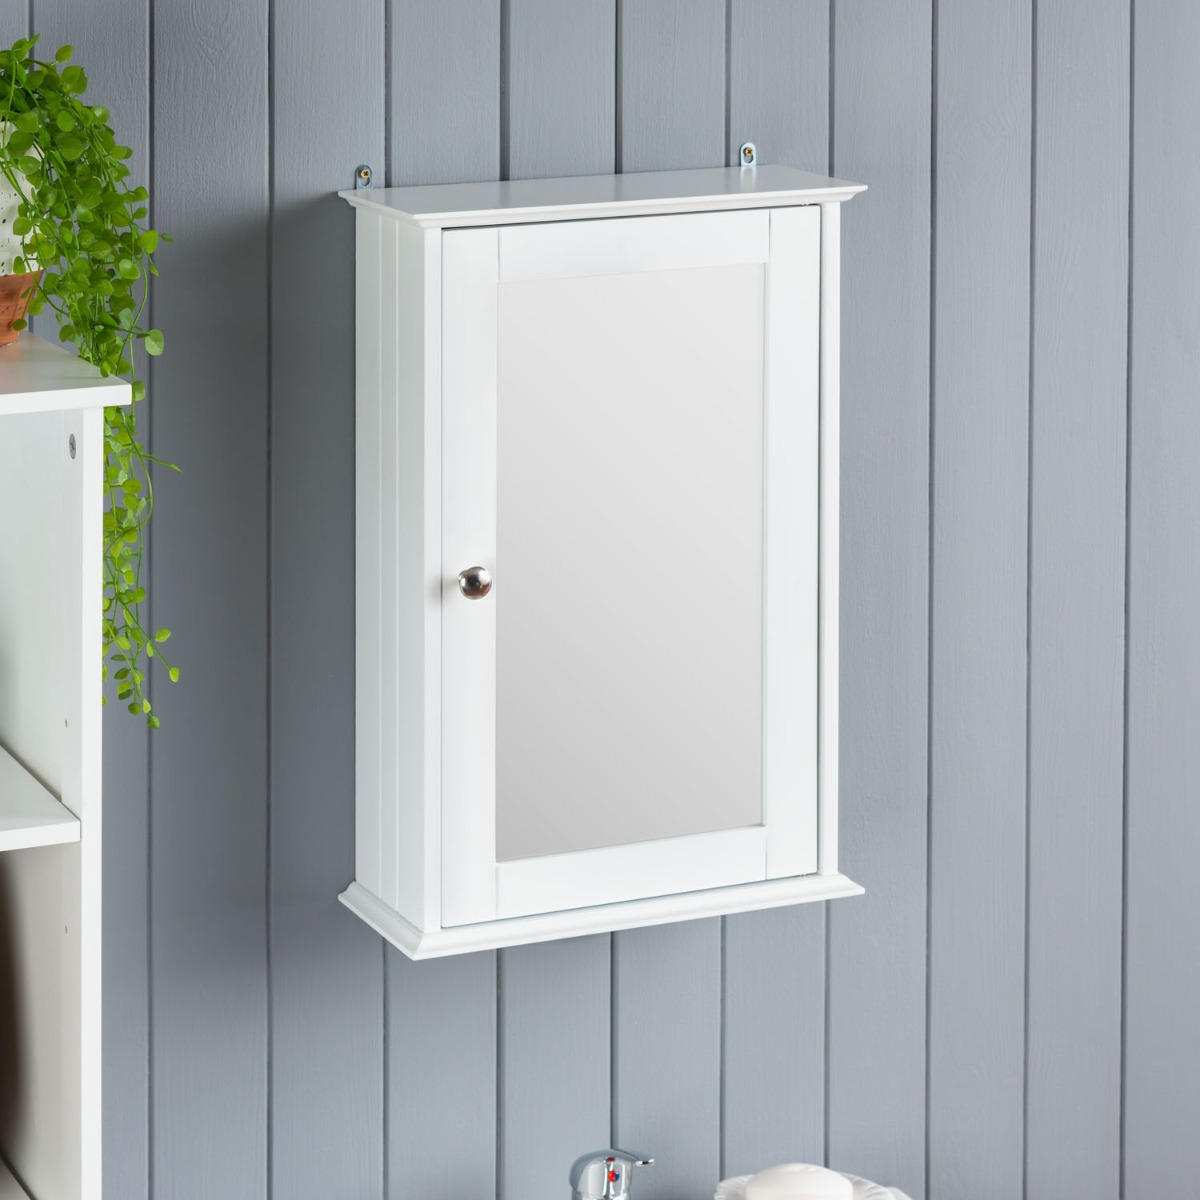 Image of Small White Mirrored Cabinet